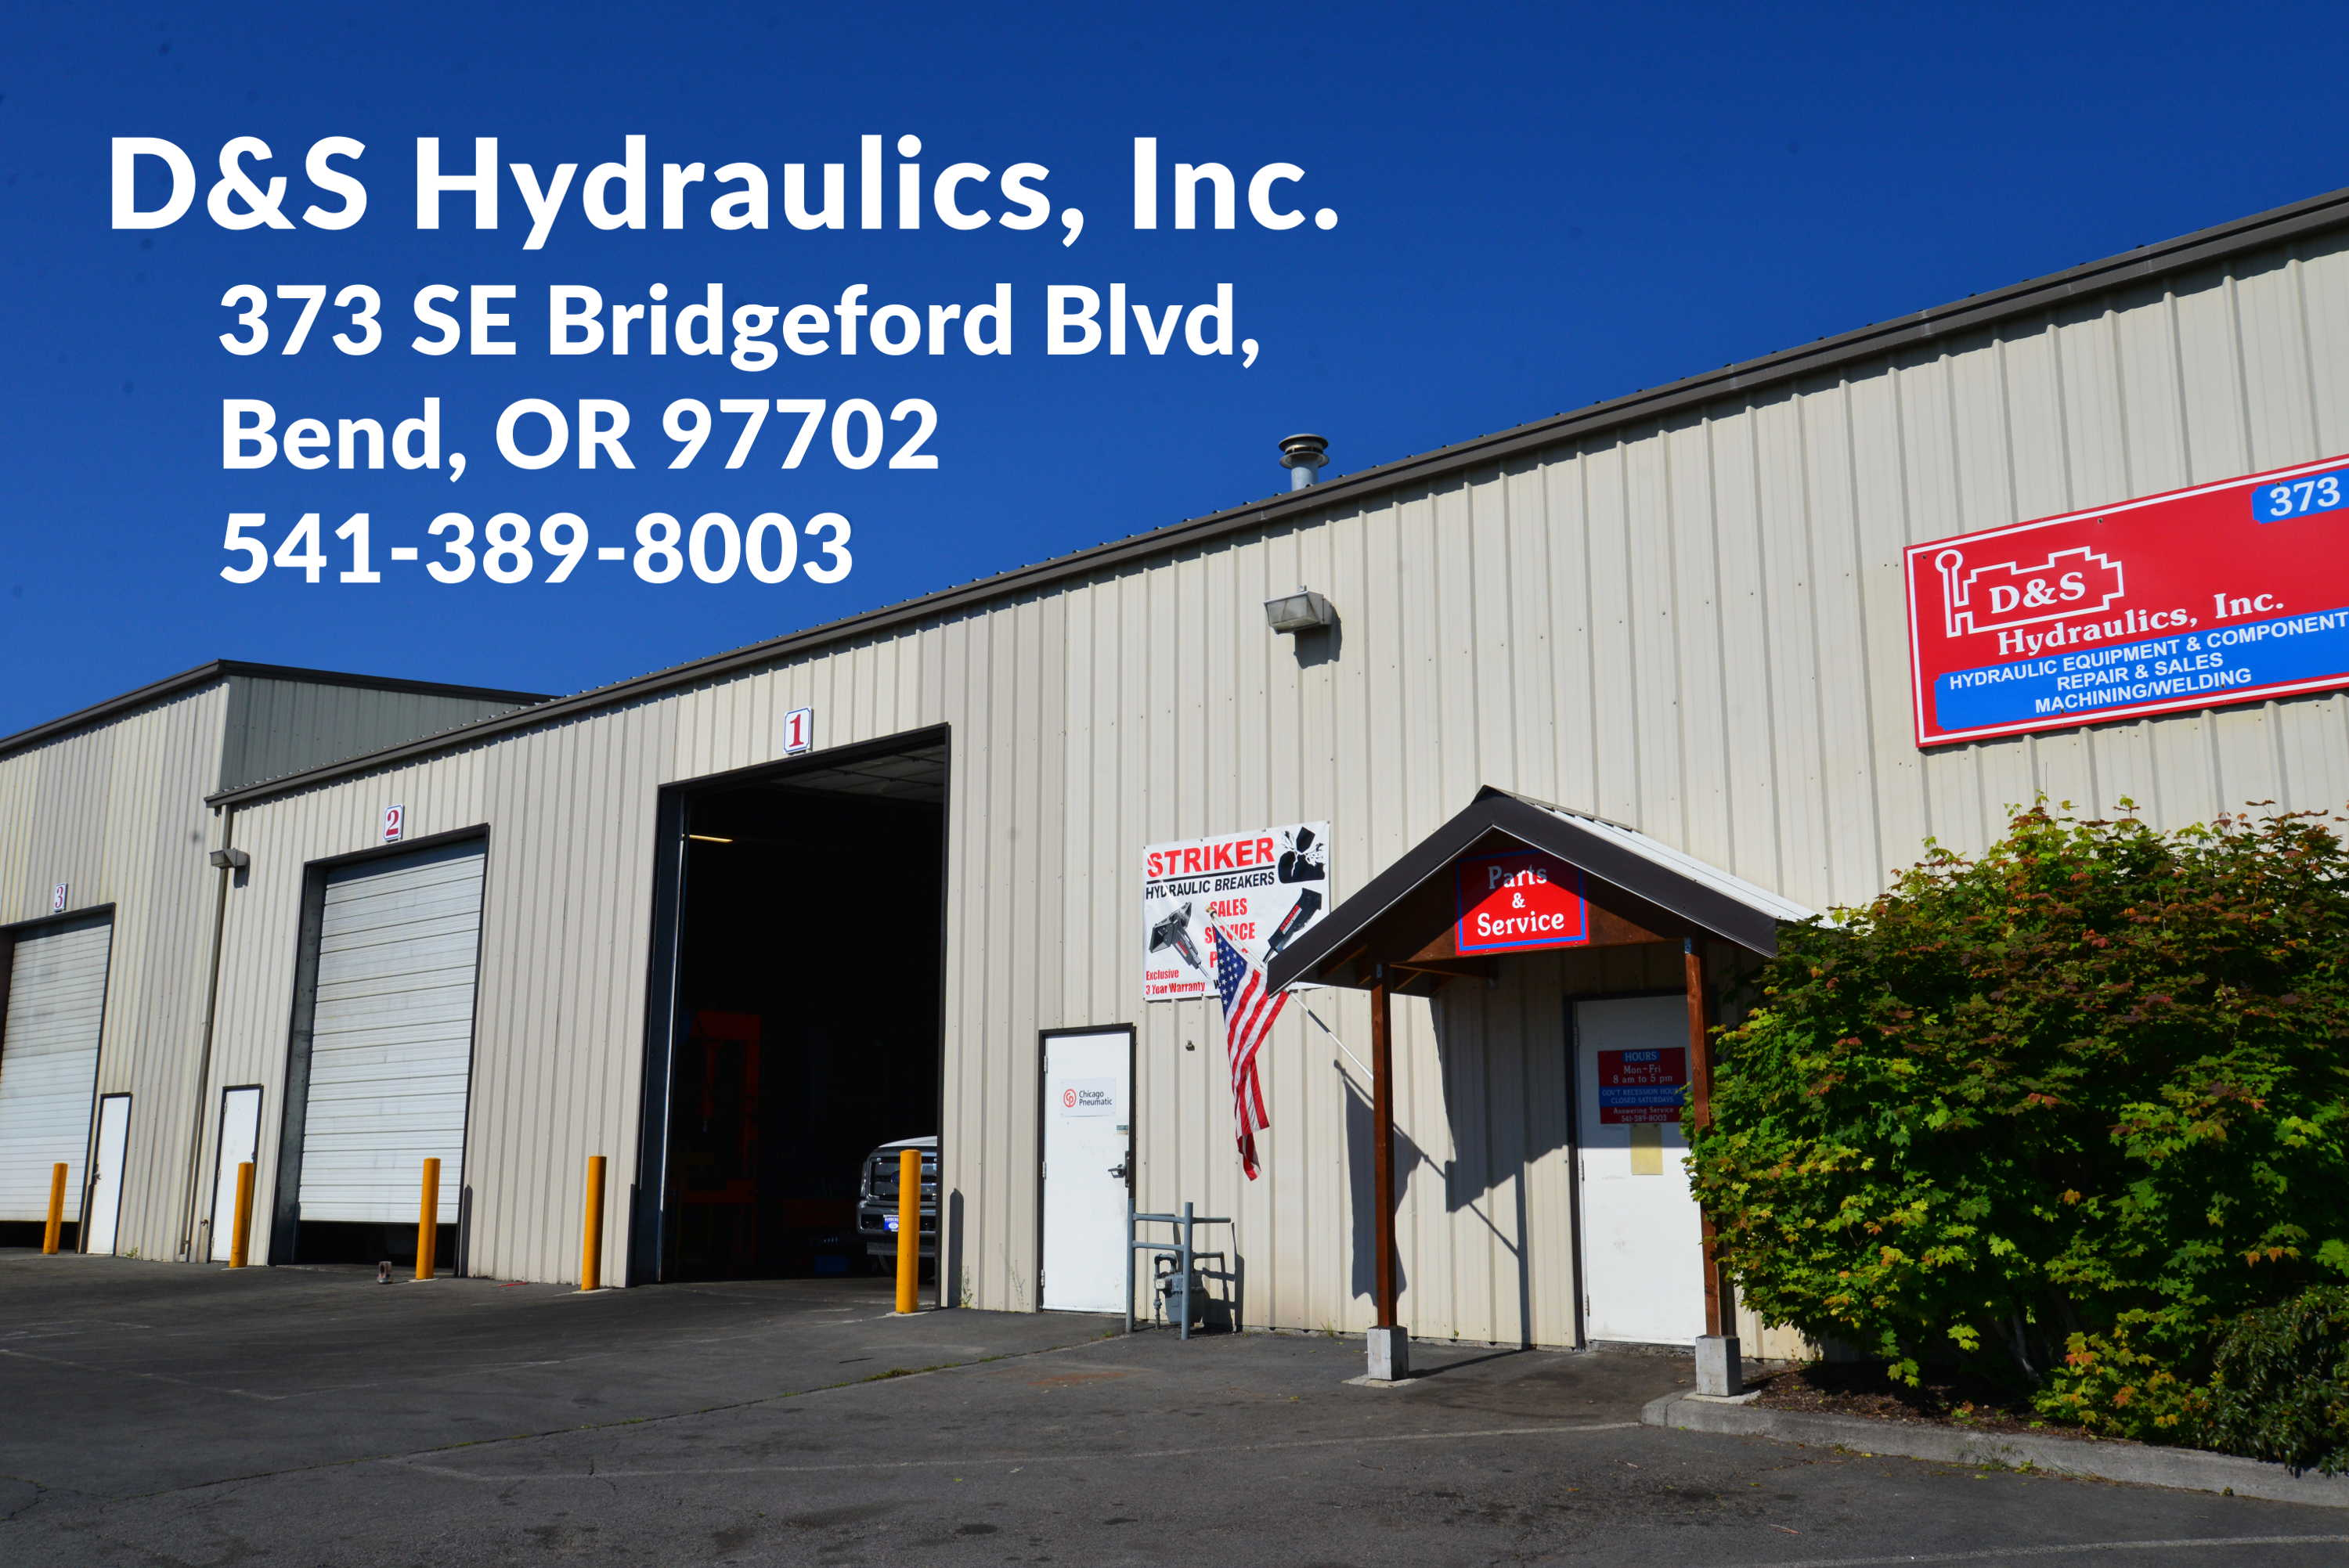 Machining and welding with full fabrication services at D&S Hydraulics in Bend